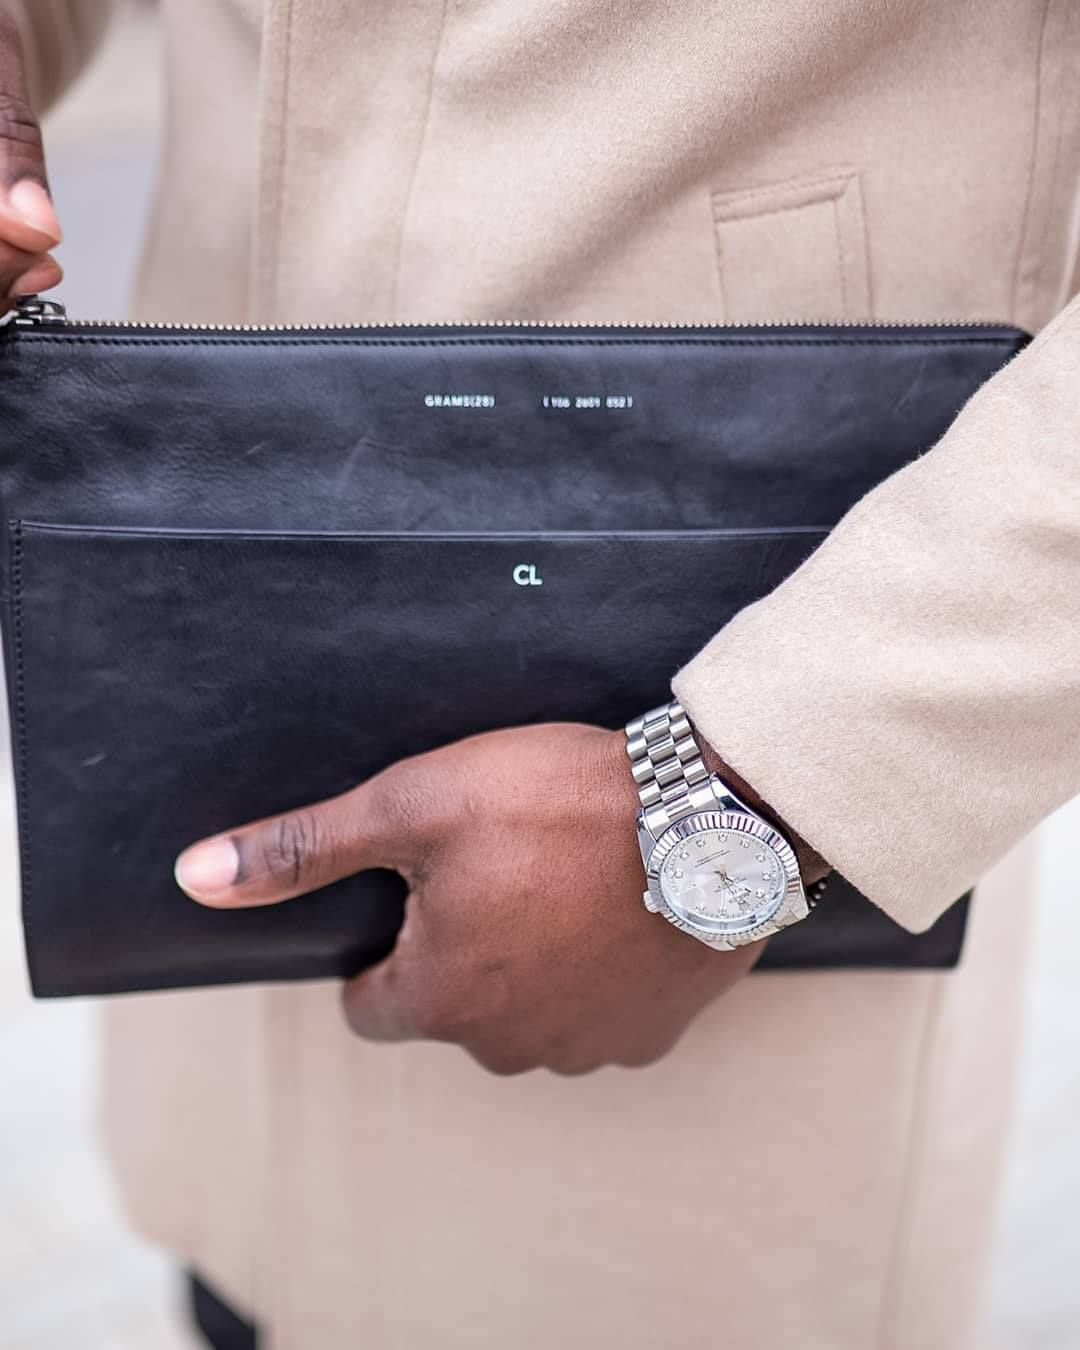 The leather folio lets you hold your everyday items in one hand.  Photo by @lekkybestofficial Featured product: #Grams28 106 #Leather #Folio  #Grams28 #leatherfolio #leather #macbook #apple #laptop #laptopcases #macbookcases #laptopsleeves #macbooksleeves #macbookcase #macbookpro #macbook12 #macbook13 #macbook15 #leathercraft #leatherart #leathergoods #mensfashionhub #mensblog #menstylepage #menstreetwear #gentwithstreetstyle #mensfashiontips #menswearfashion #mensfashionblog